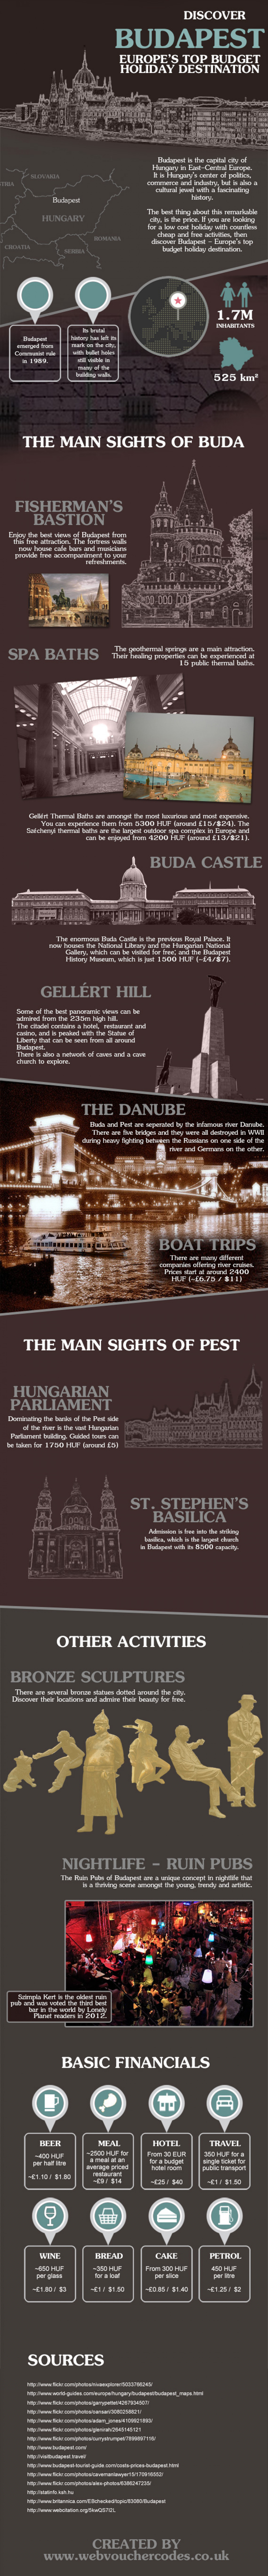 Discover Budapest - The Facts and Figures Infographic